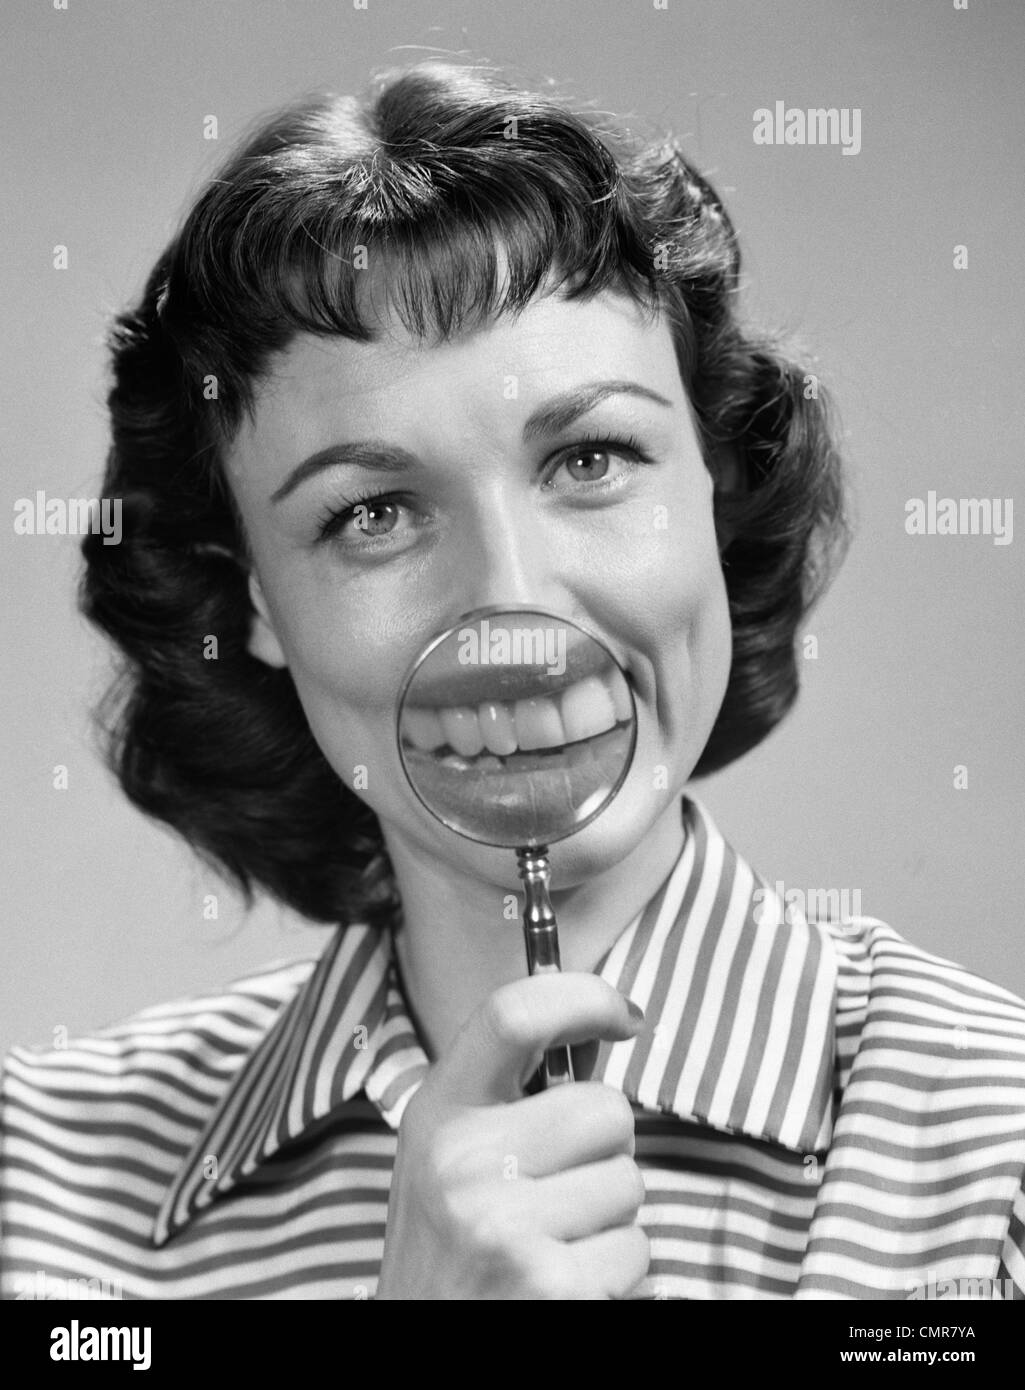 1950s SMILING PORTRAIT BRUNETTE WOMAN LOOKING AT CAMERA HOLDING MAGNIFYING GLASS TO MOUTH - Stock Image